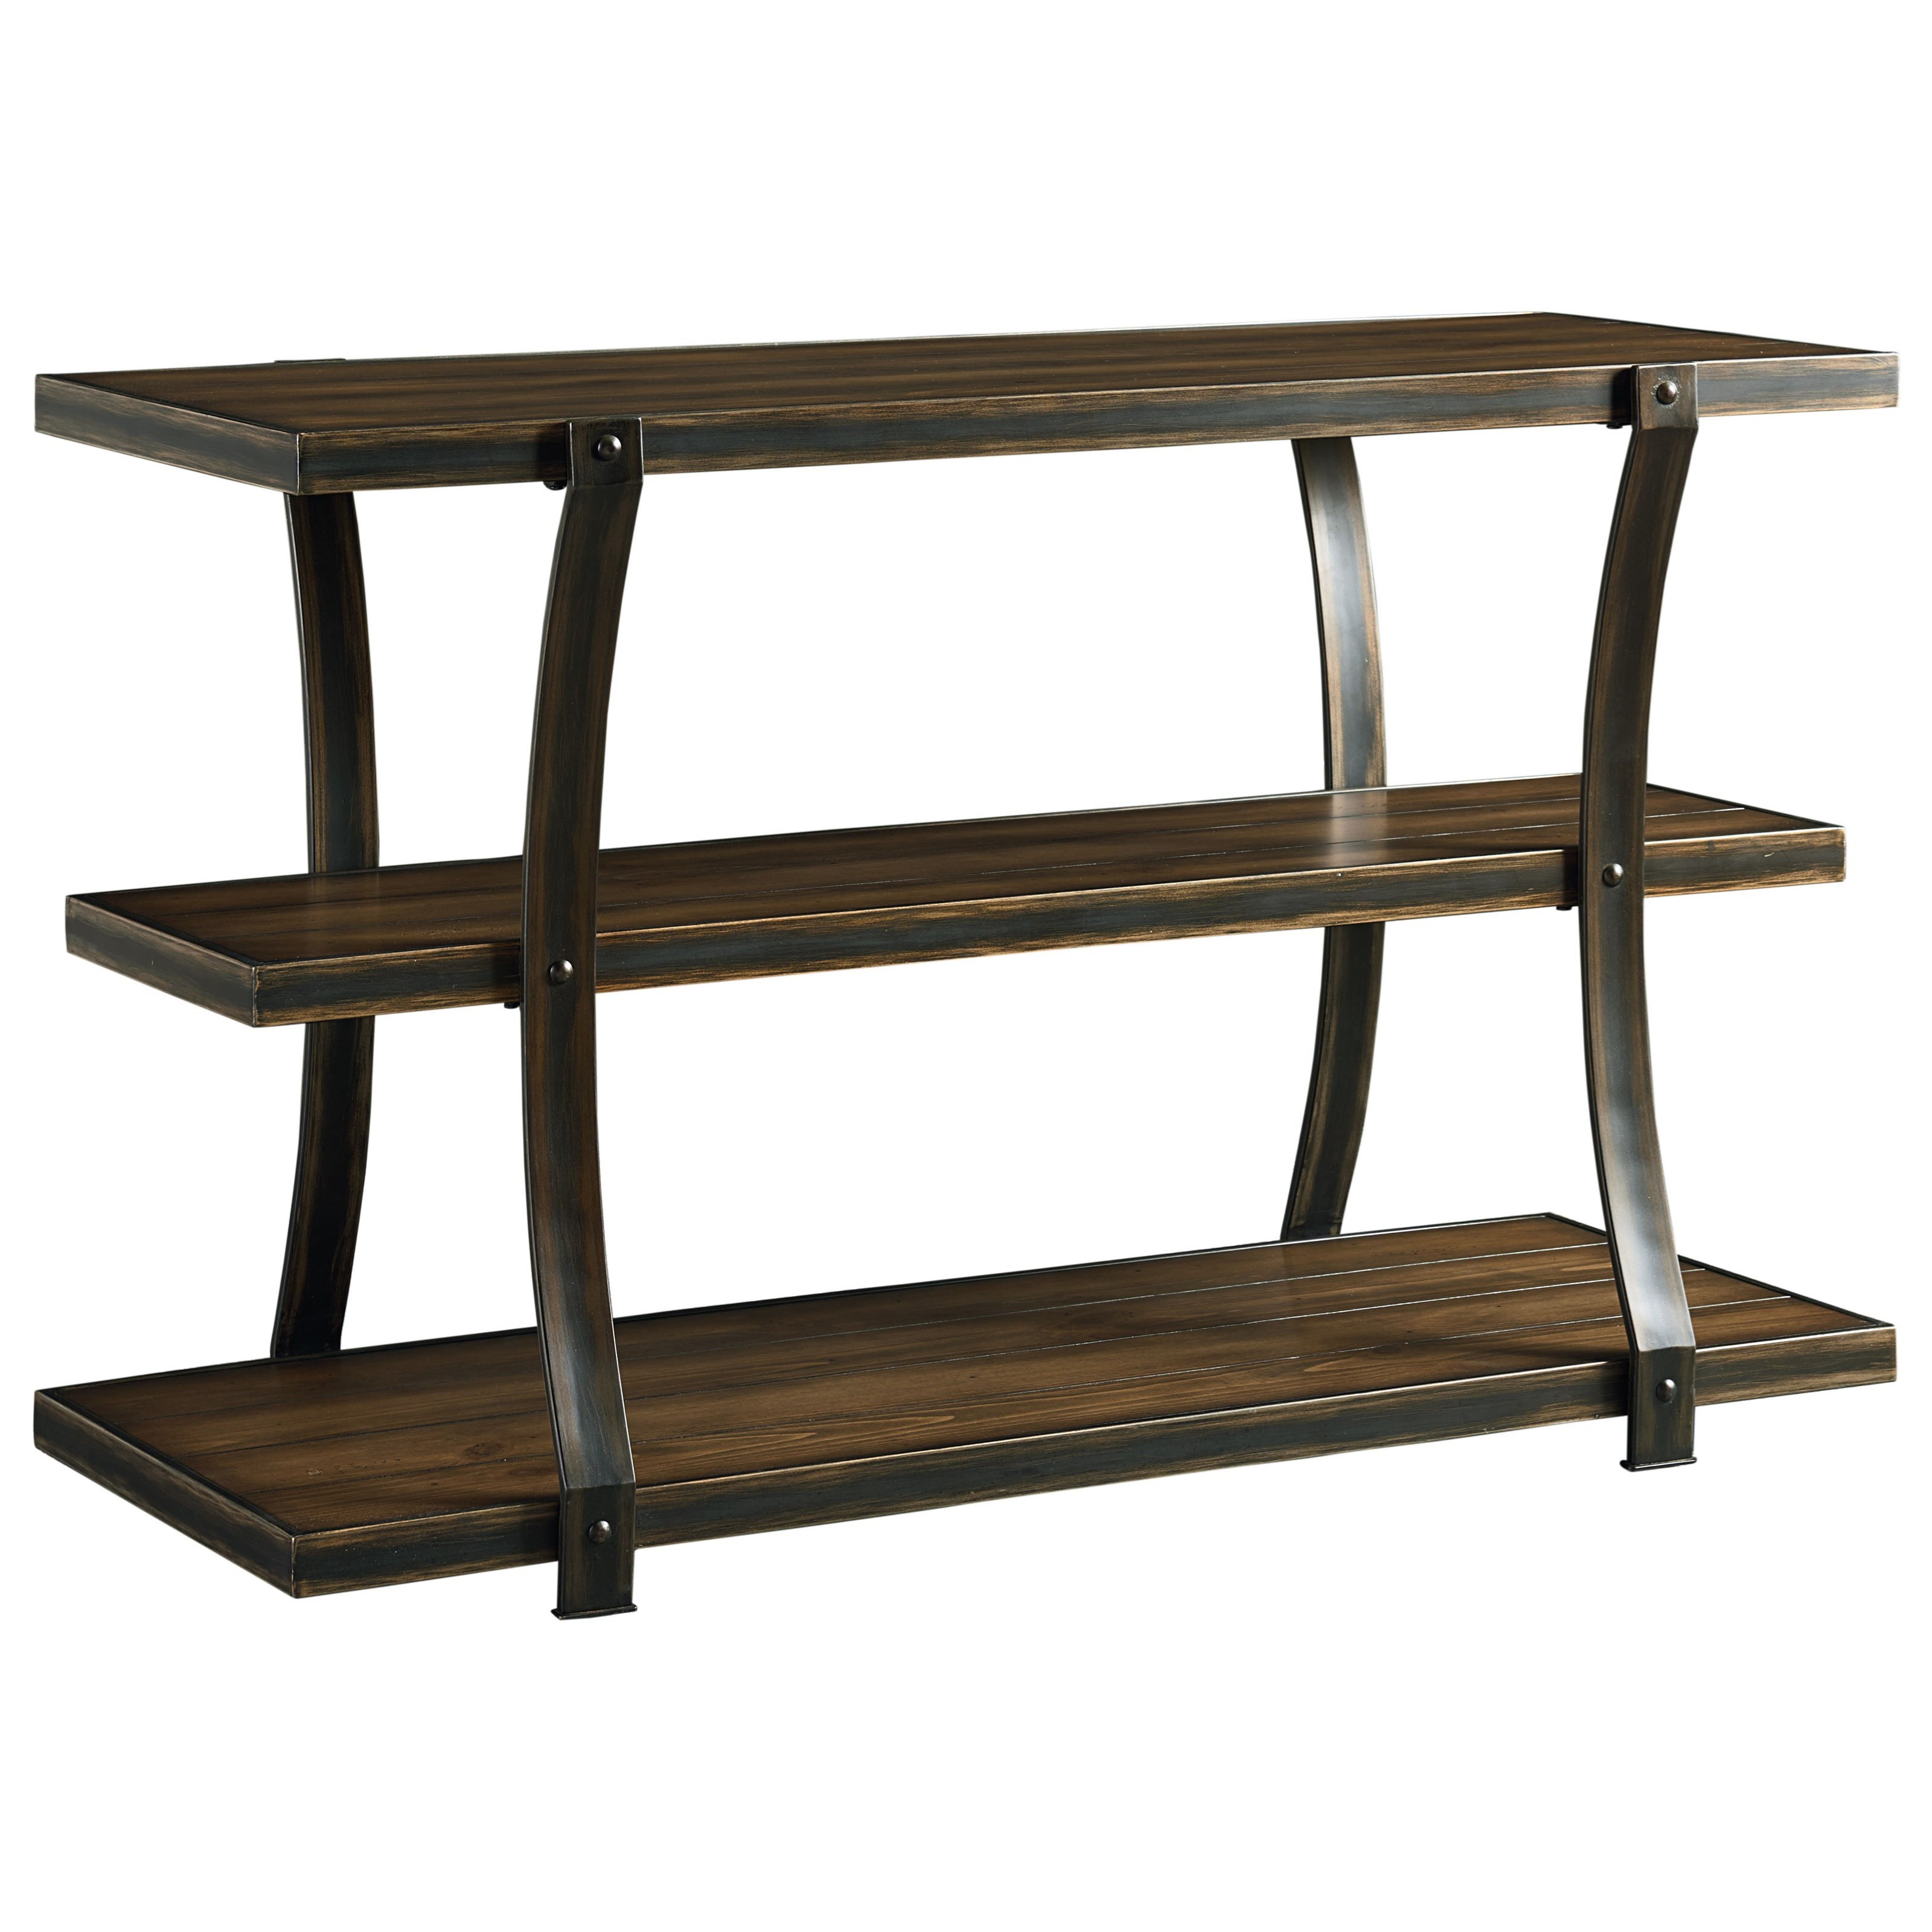 Standard Furniture Huntington Console Table - Item Number: 28866